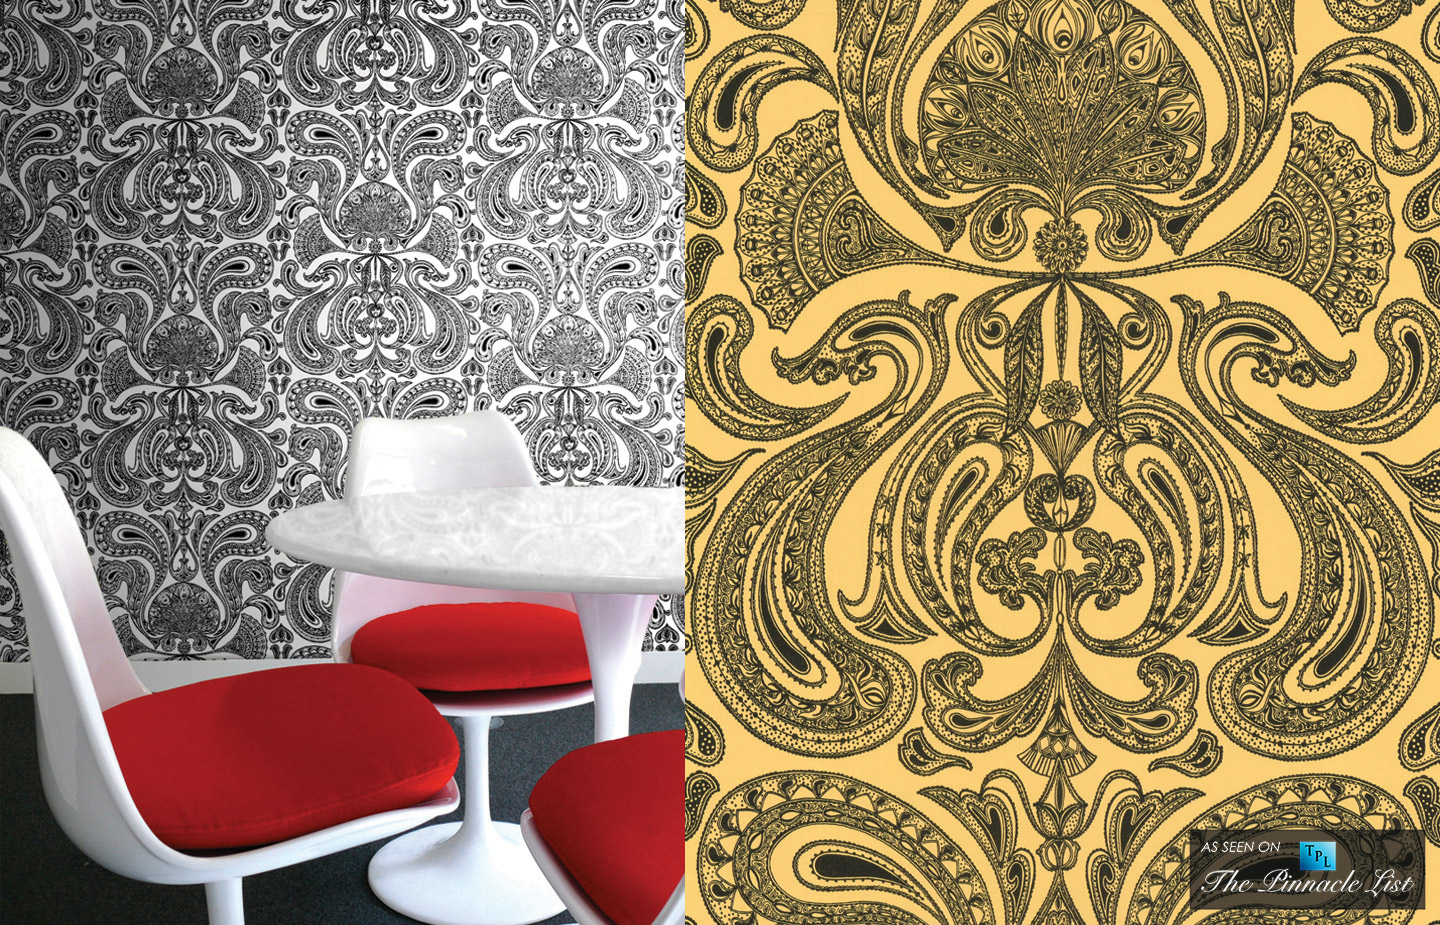 A Lively Backdrop - Geek Gone Luxury Chic - Incorporating Insects Into High Fashion Home Décor